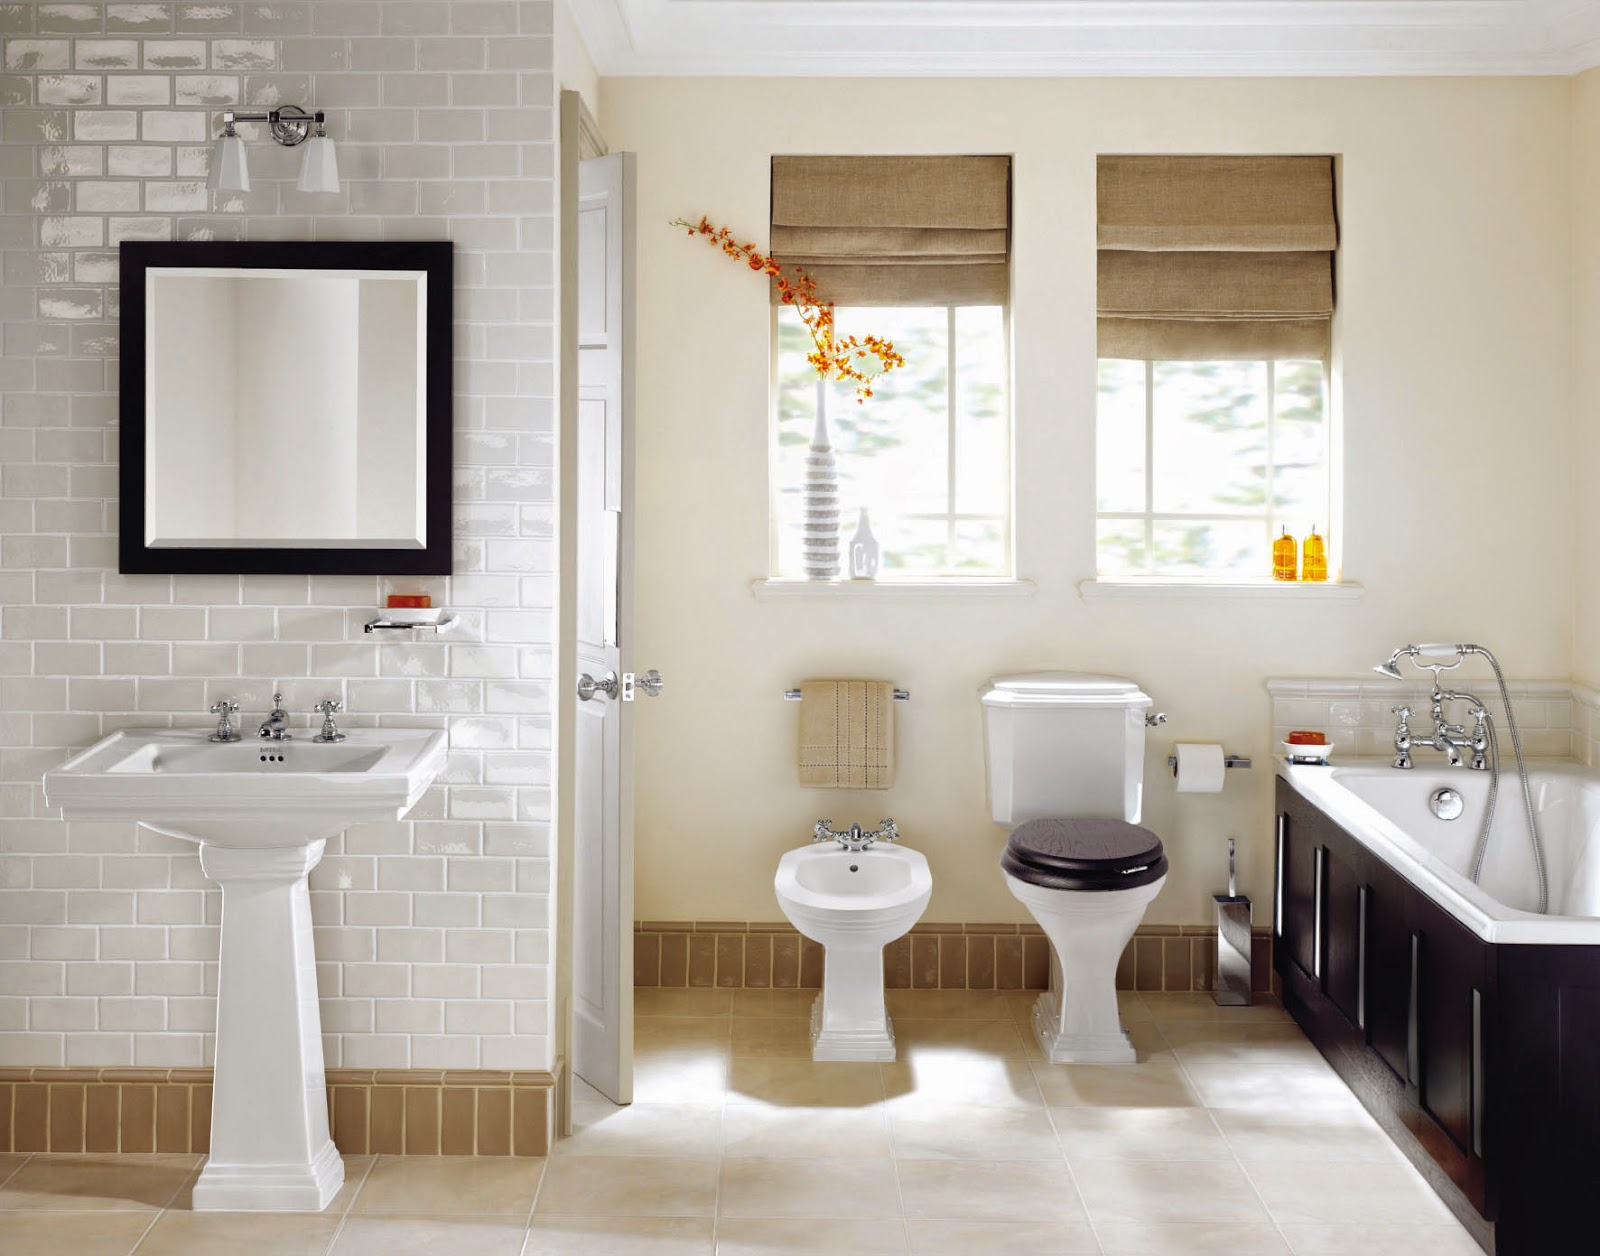 HOME OF HOMEMADE TREASURES Guest Post Make The Most Of The Small Bathroom